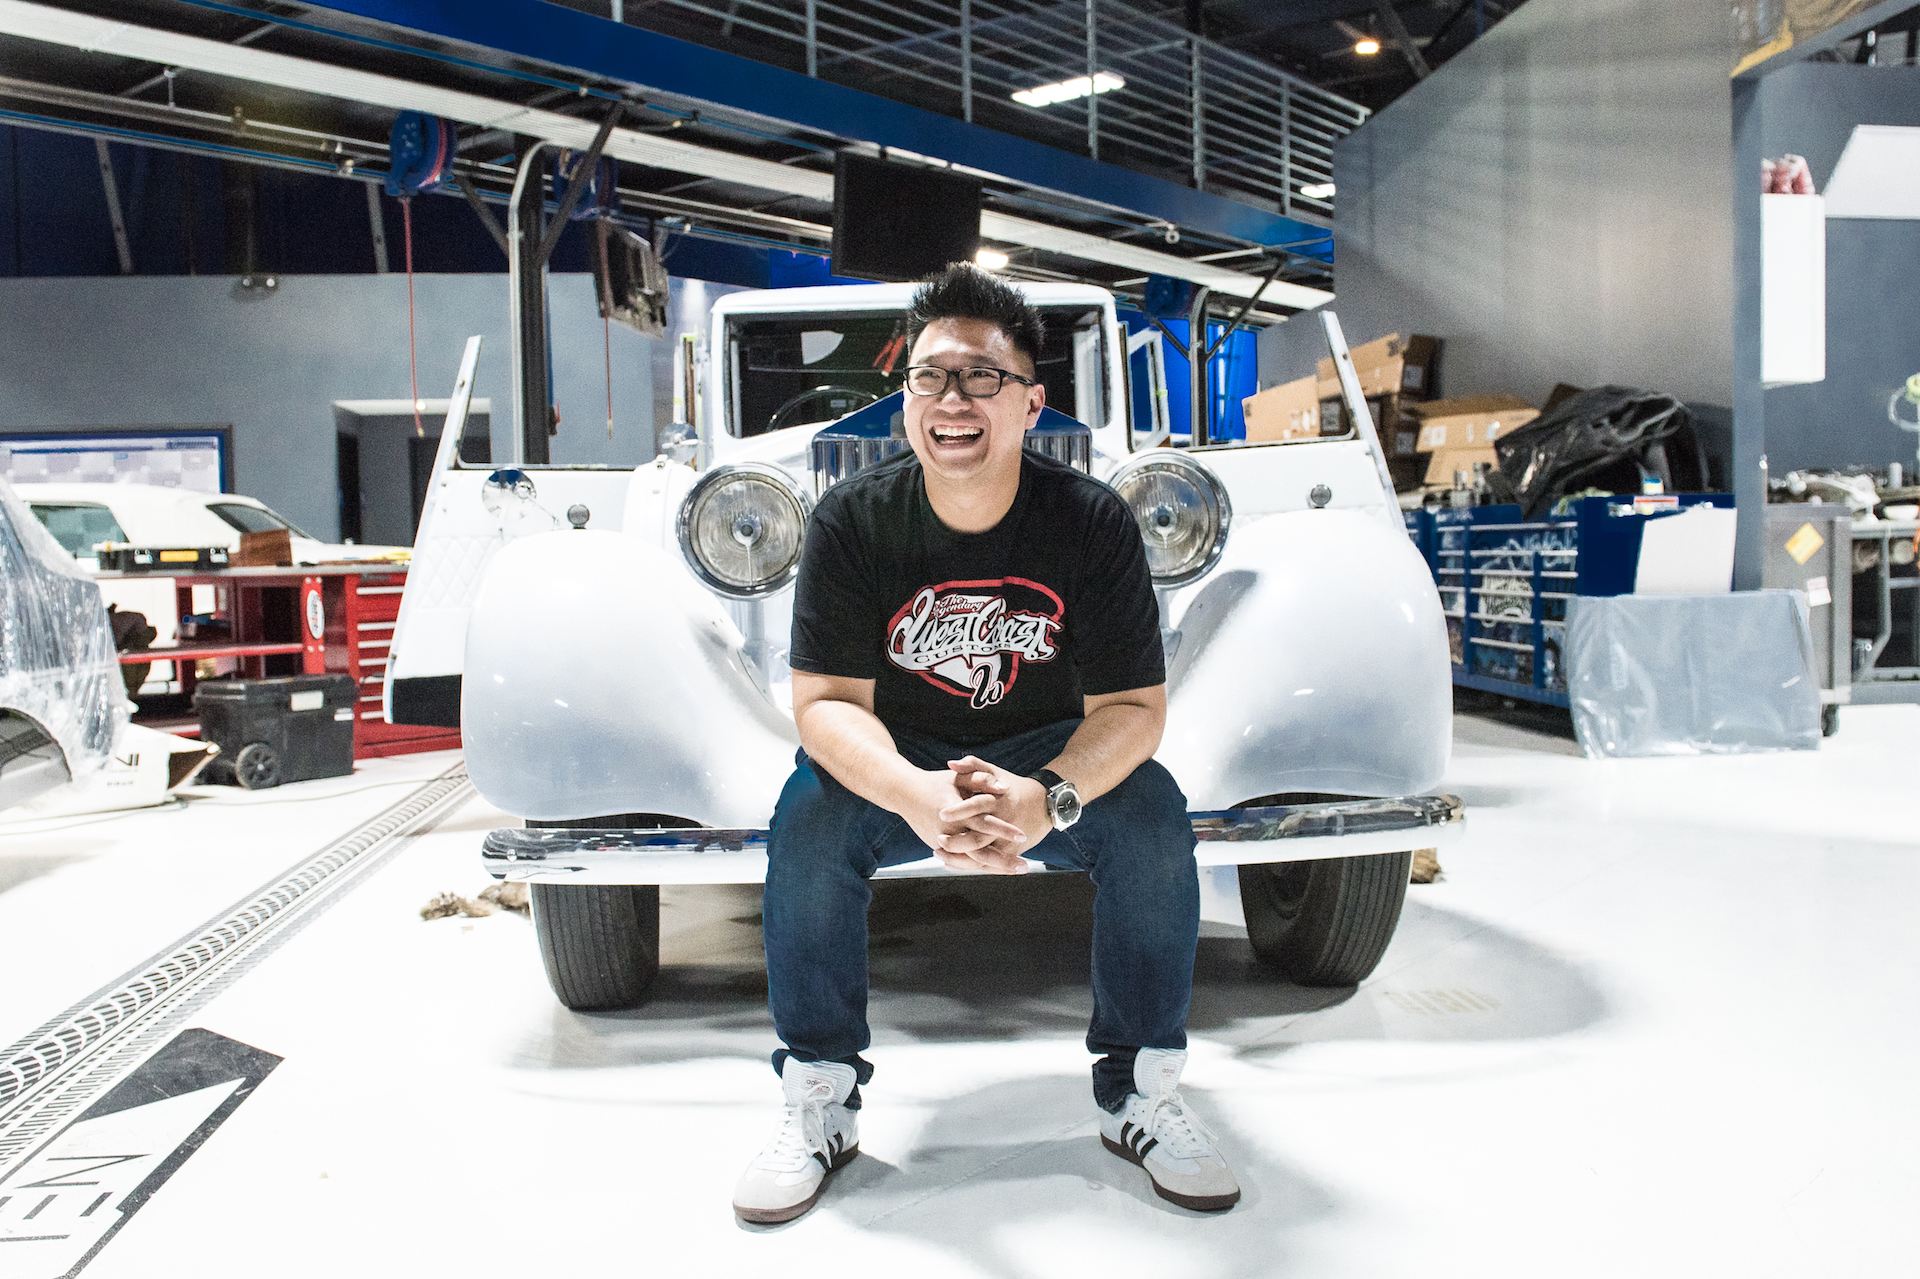 Musa Tjahjono, Head Designer at West Coast Customs, in front of Justin Bieber's Rolls Royce Phantom.